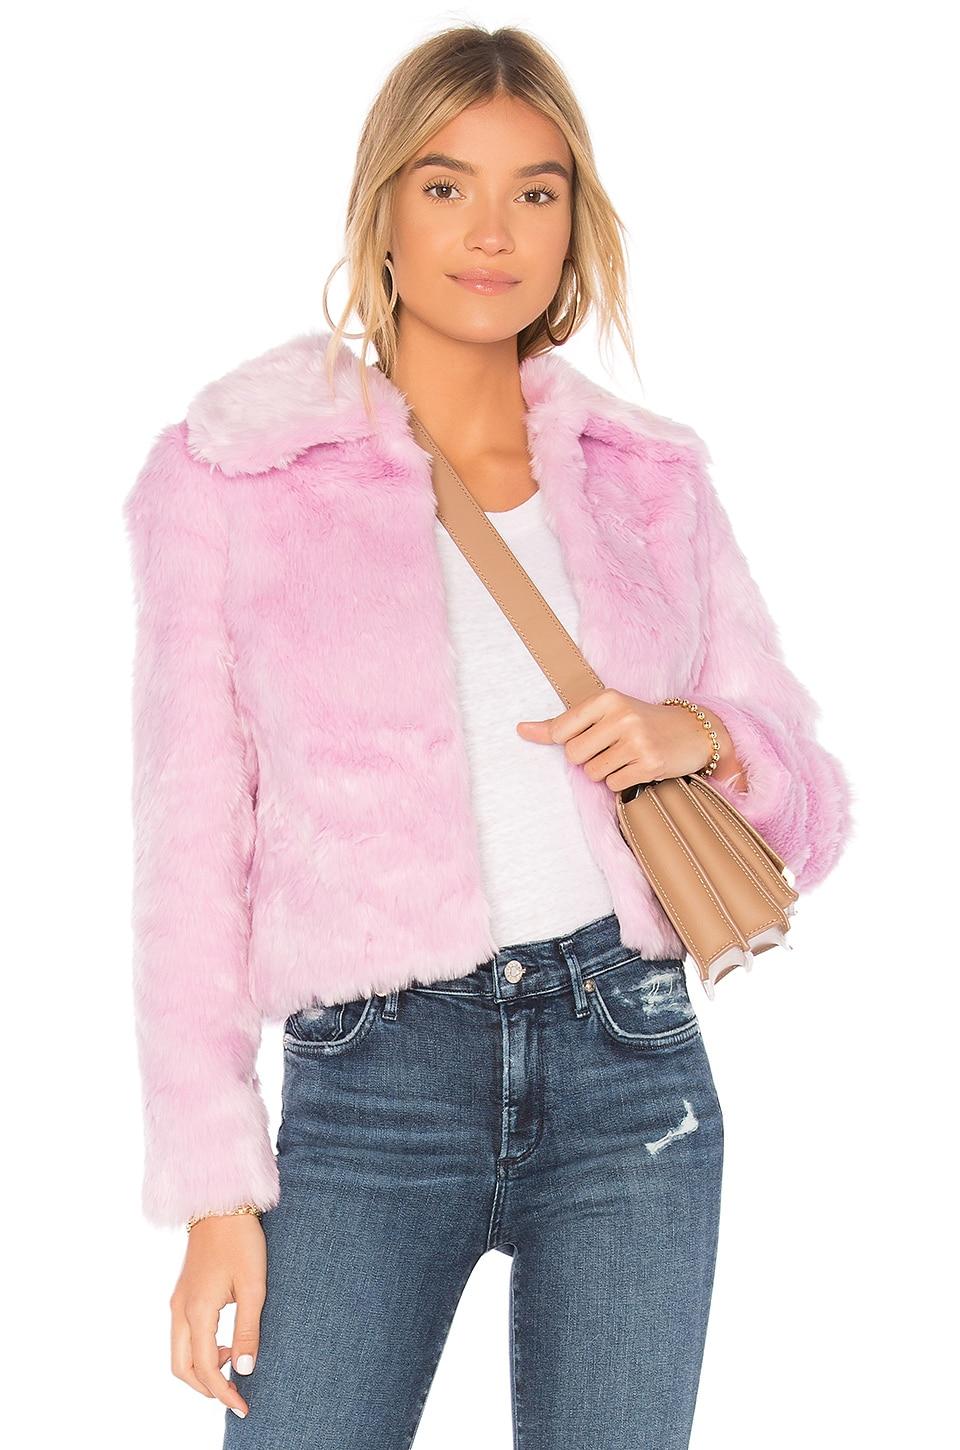 EAVES x REVOLVE Ryder Faux Fur Jacket in Ballerina